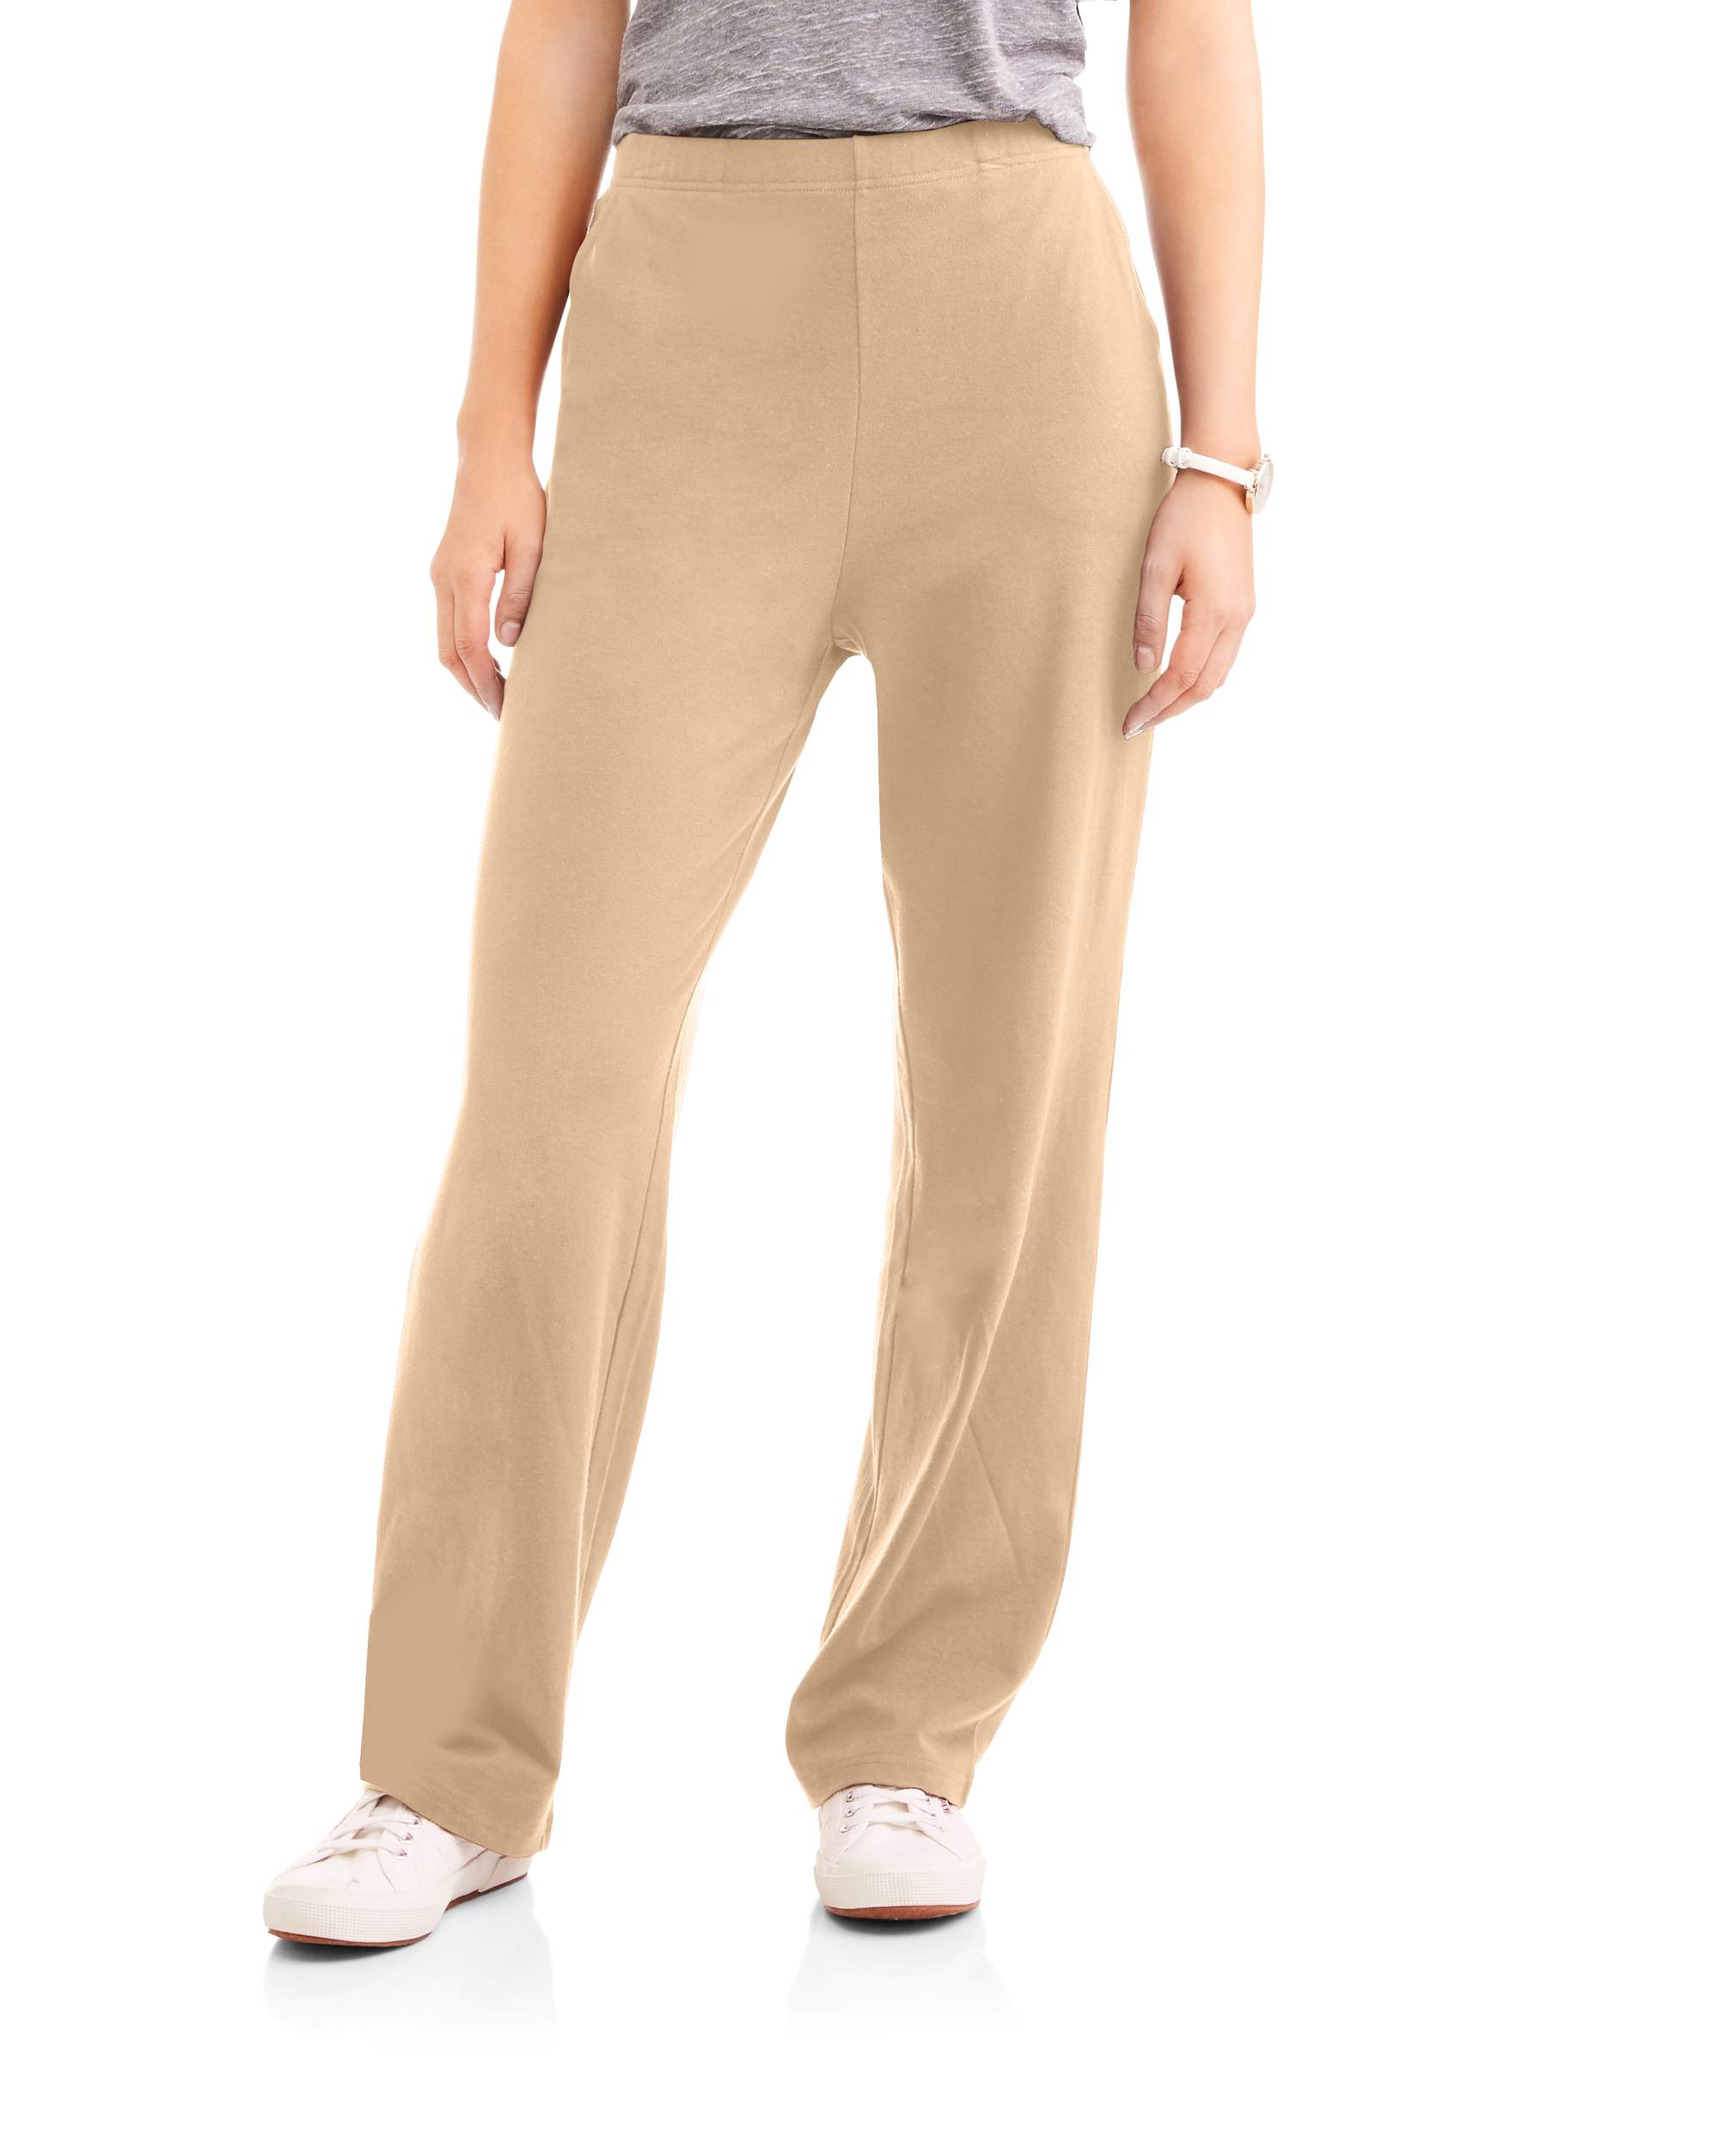 Women's Knit Pull-On Pant Available in Regular and Petite